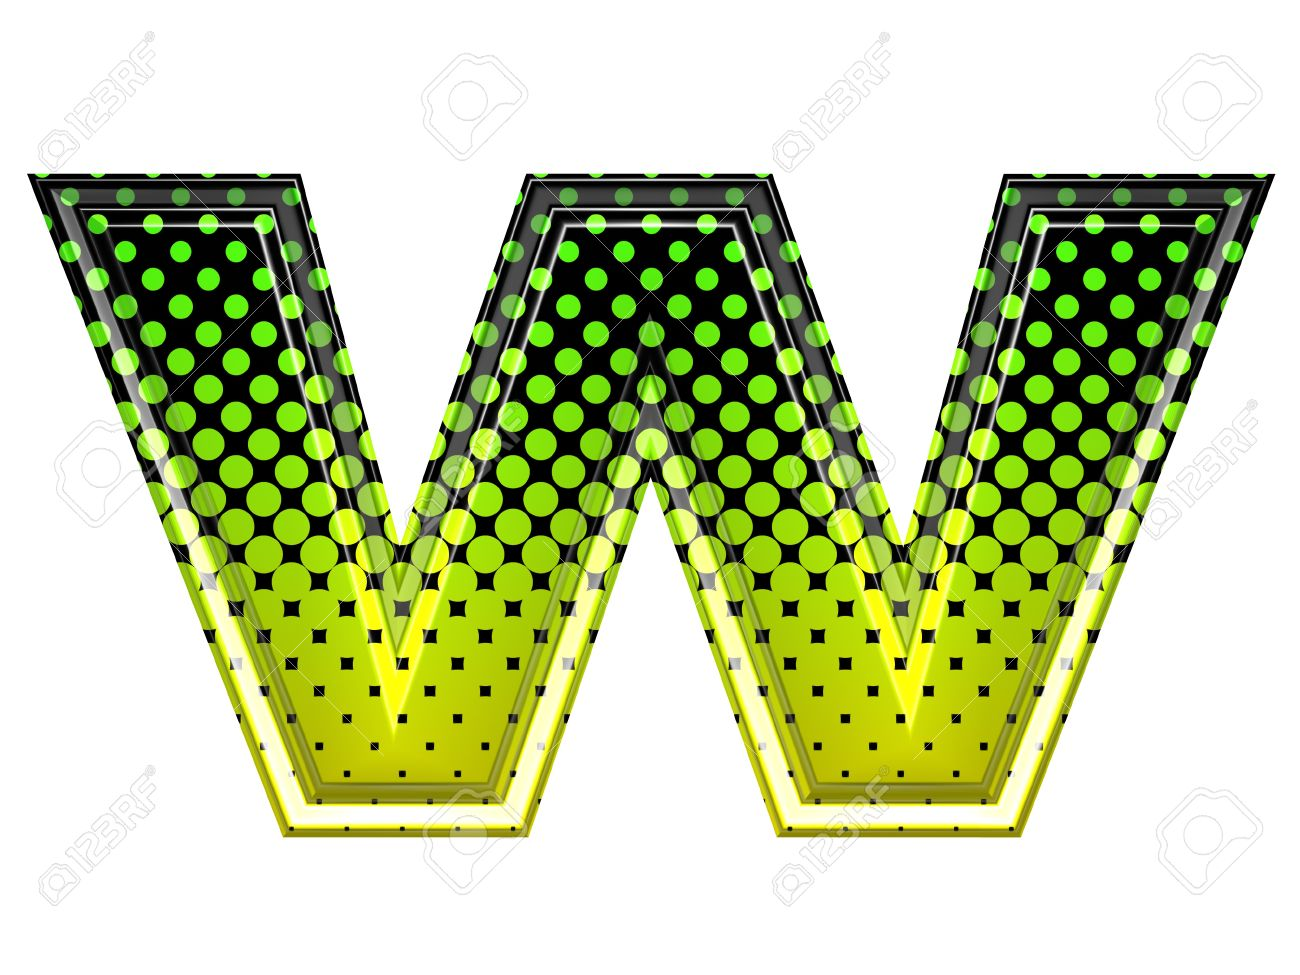 Lower case letter w clipart png freeuse stock Halftone 3d Lower-case Letter W Stock Photo, Picture And Royalty ... png freeuse stock